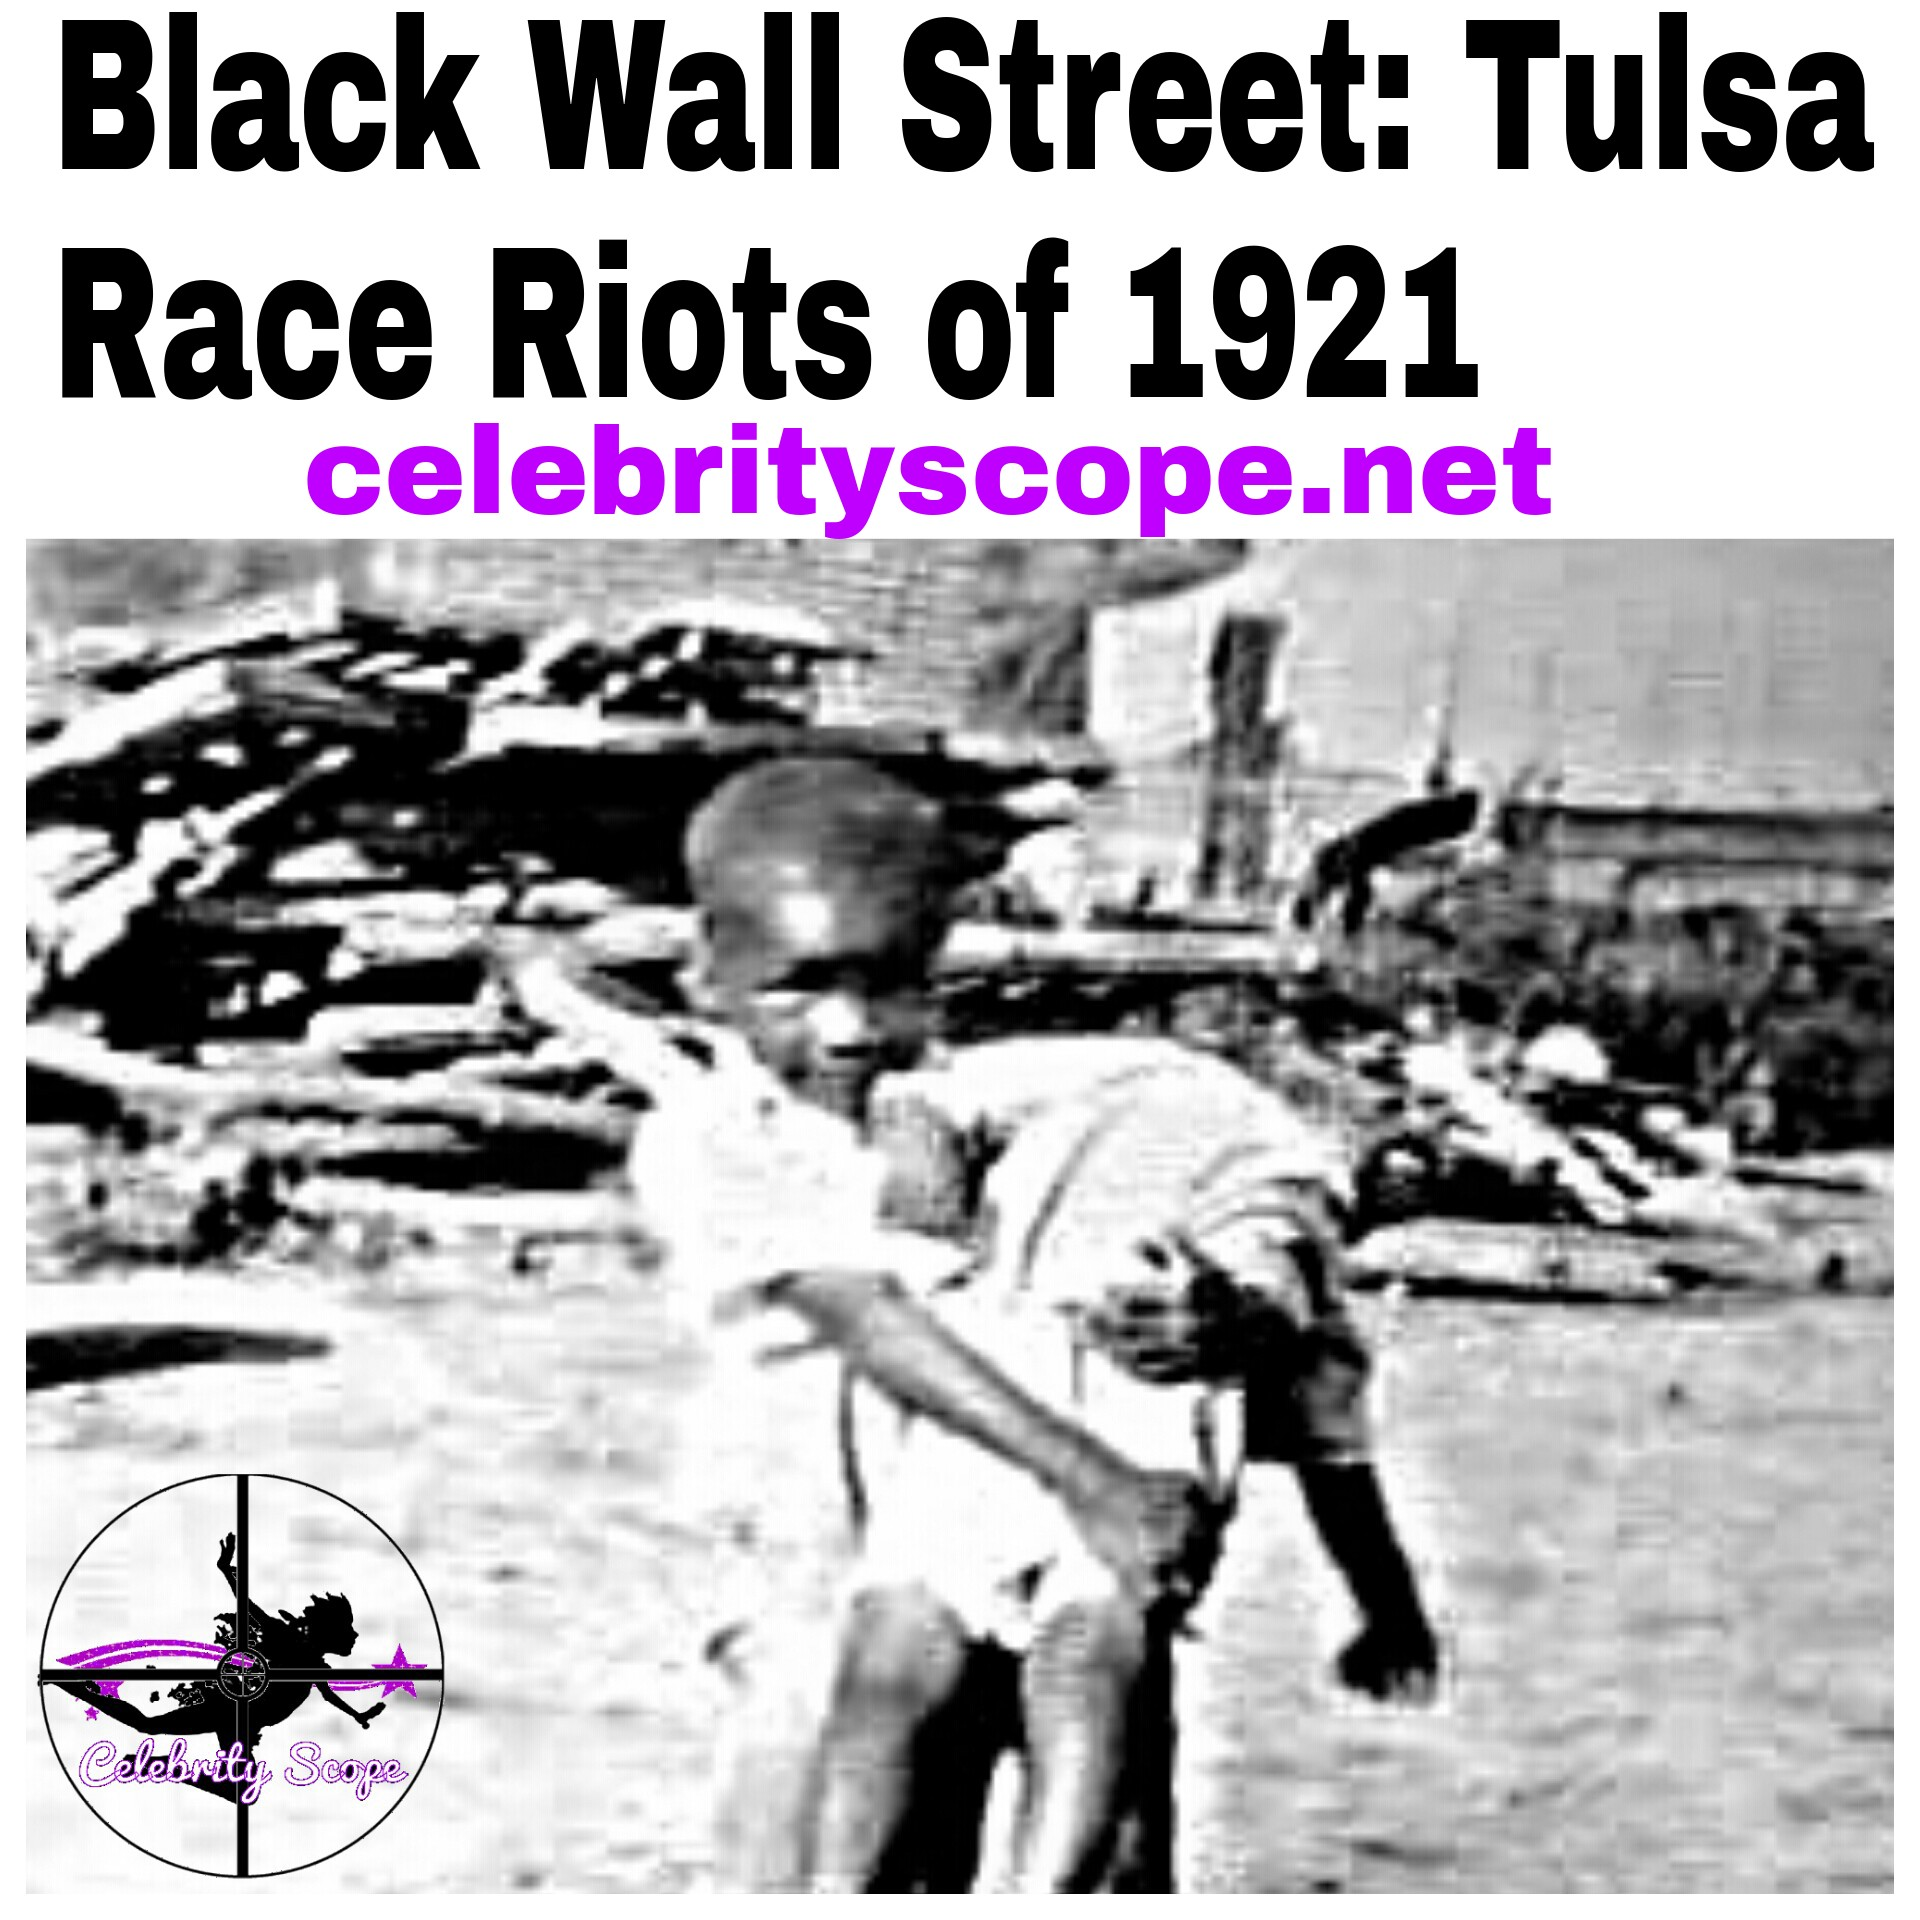 tulsa race riots Tulsa's race riot of 1921 has been mentioned rarely in public or private now, advocates are pressing for recognition.